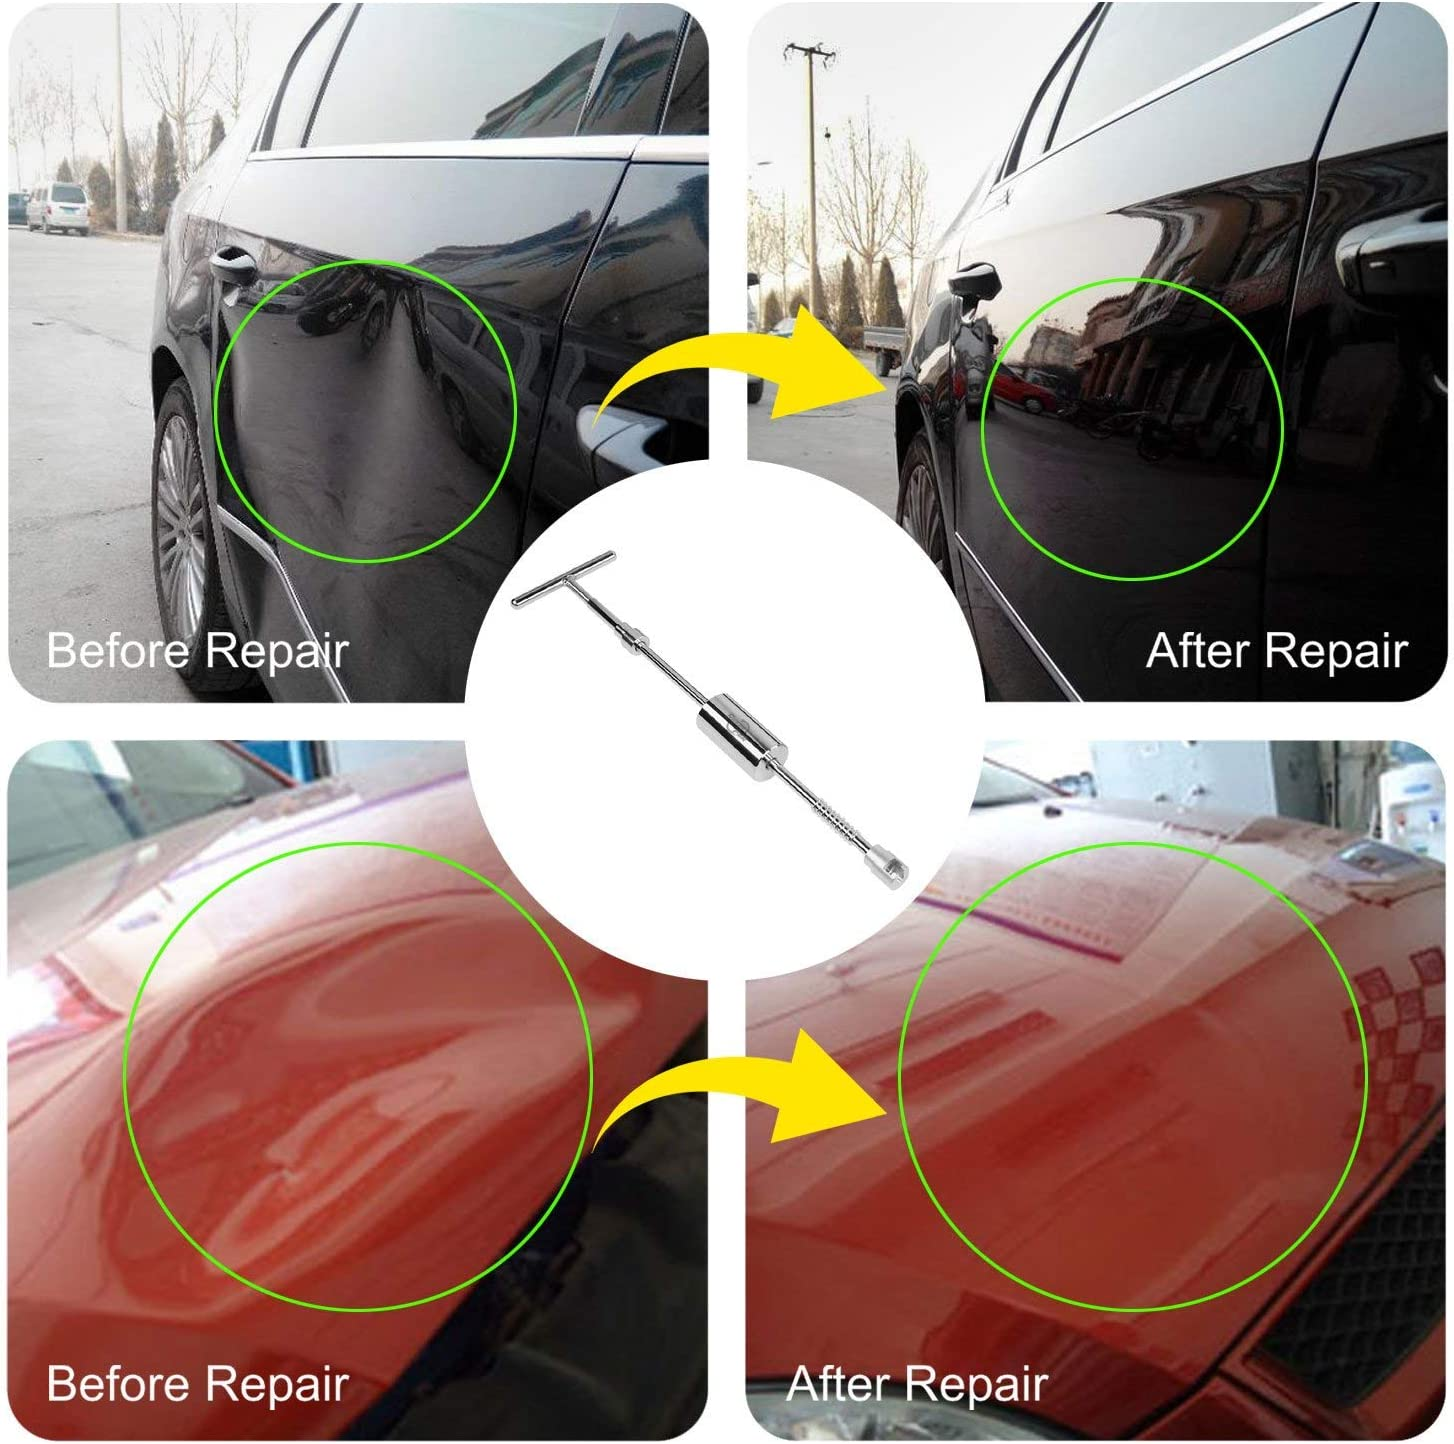 AUTOPDR Dent Repair Tools Big Dent Dent Repair kit with Bridge Dent Puller Small-Middle Dent Paintless Dent Repair Kits 69pcs Dent Repair Tool 2 in 1 T-Puller for Car Body Hail Dent Removal Dent Remover Automobile Body Repair